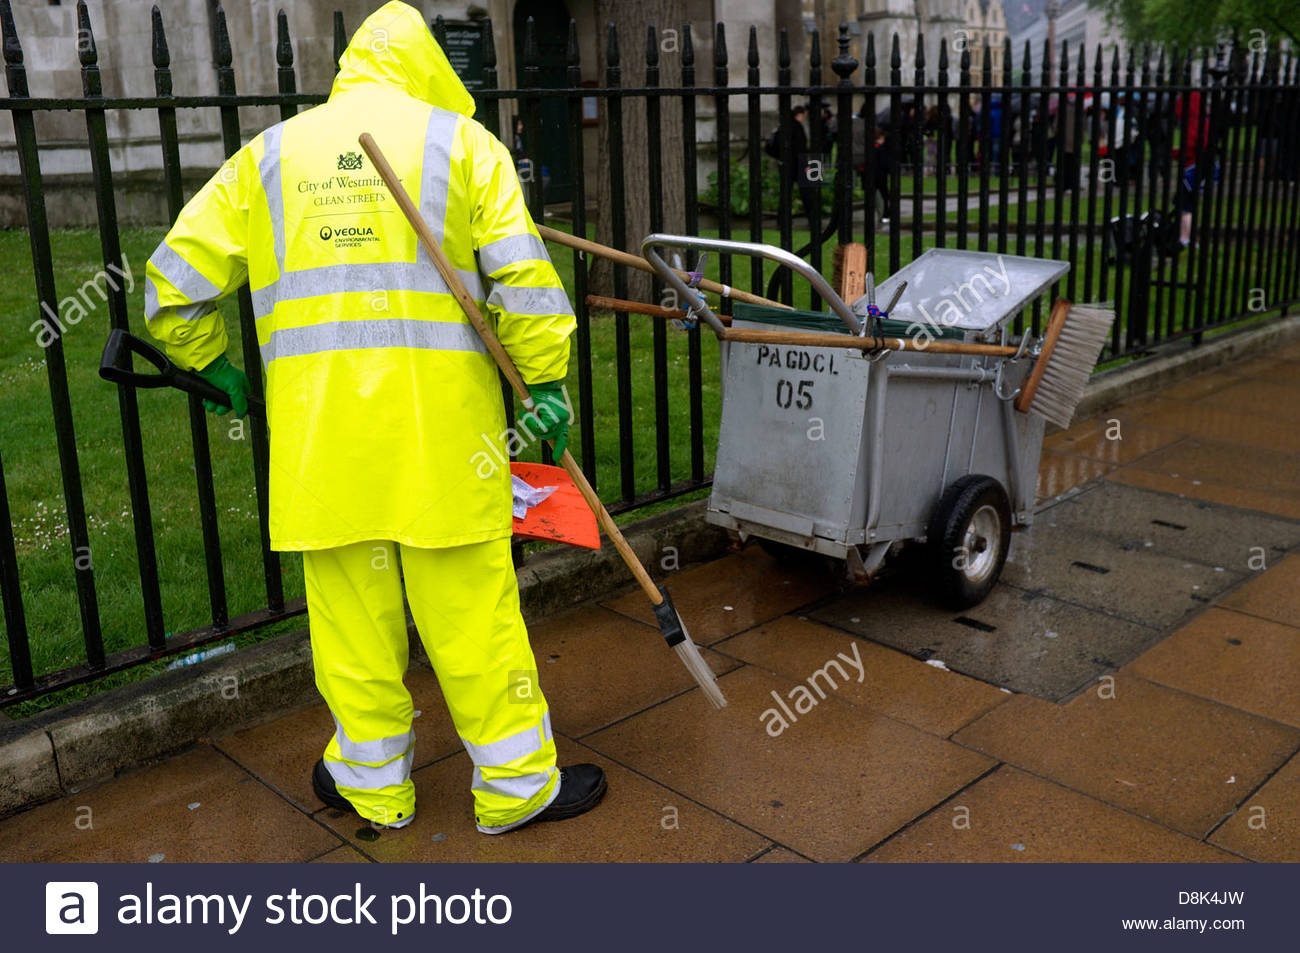 A street cleaner in high visibility waterproof clothing in Wesminster, London, UK. - Stock Image